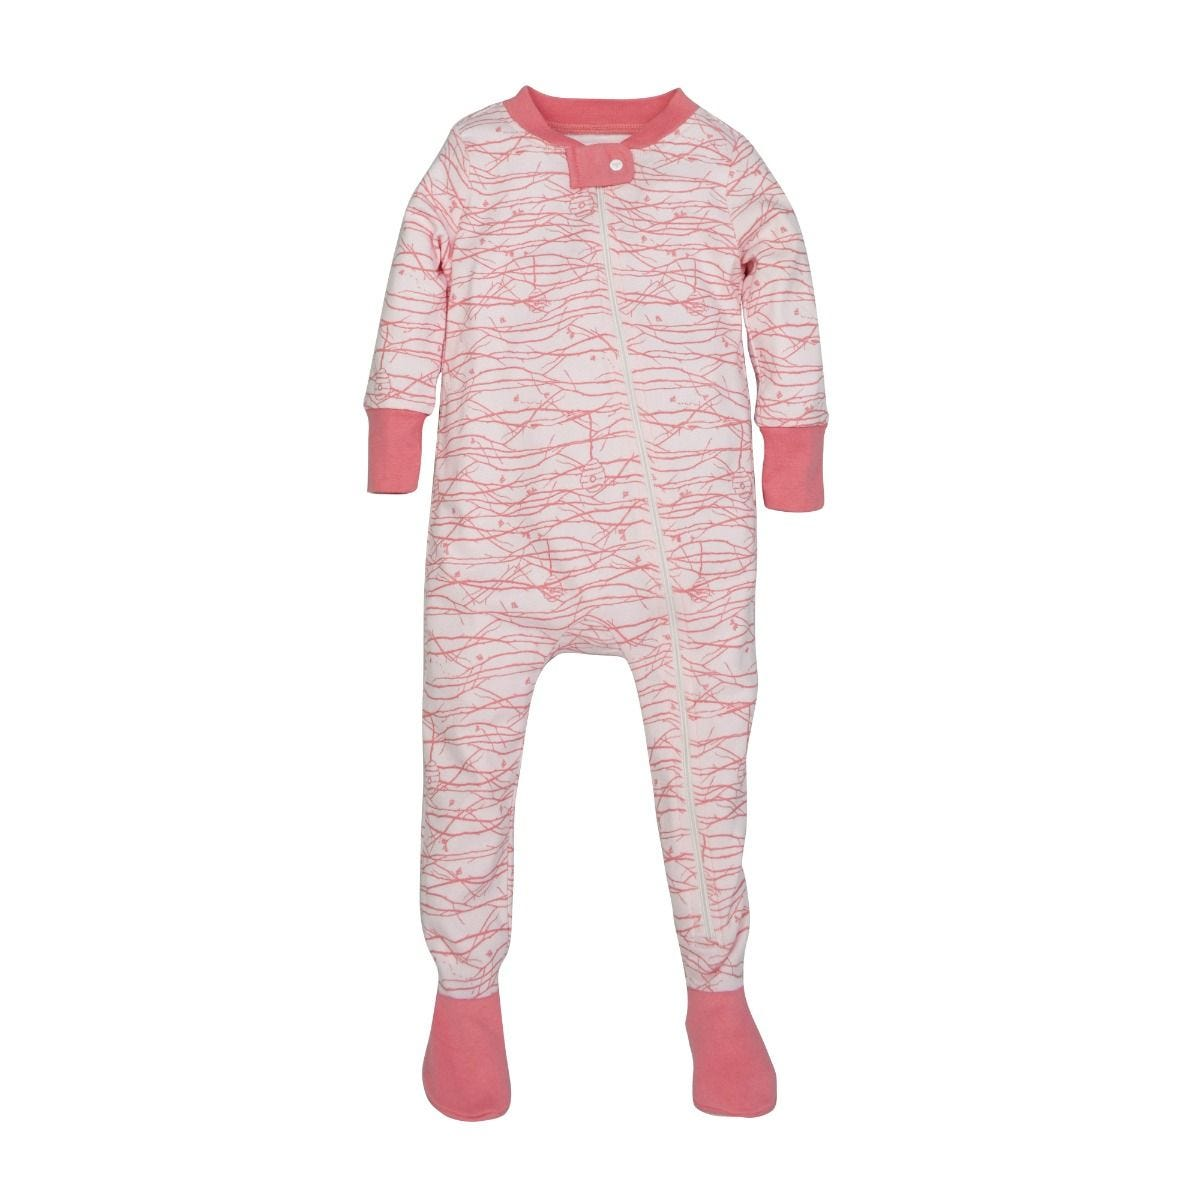 Autumn Tree Organic Baby Zip Up Footed Pajamas  e938af313